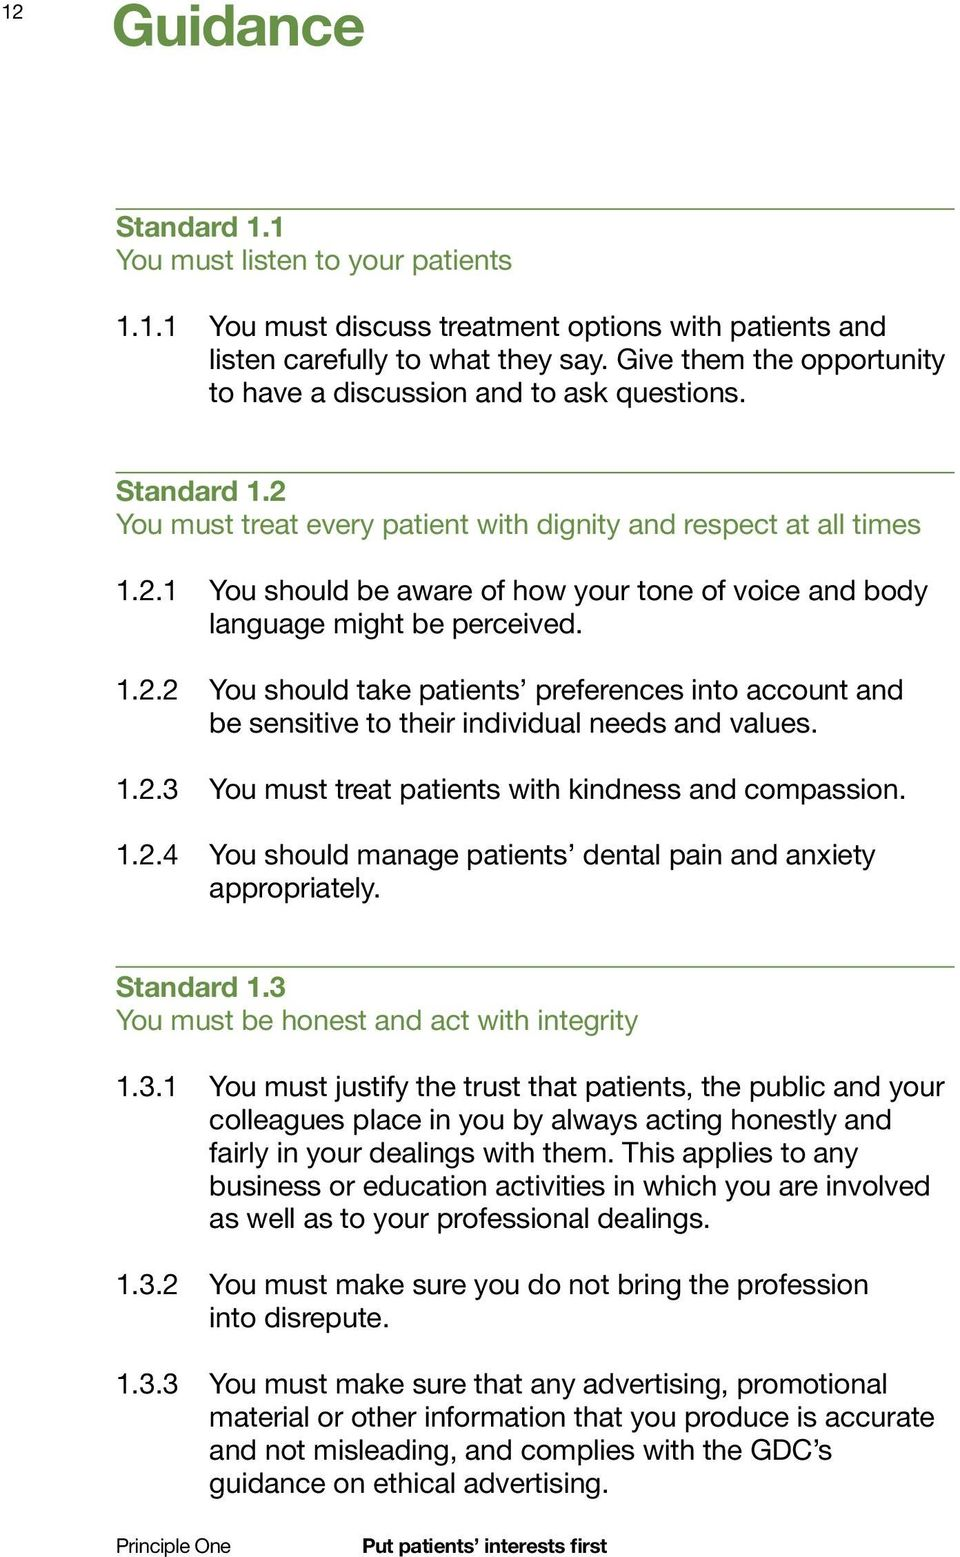 1.2.2 You should take patients preferences into account and be sensitive to their individual needs and values. 1.2.3 You must treat patients with kindness and compassion. 1.2.4 You should manage patients dental pain and anxiety appropriately.